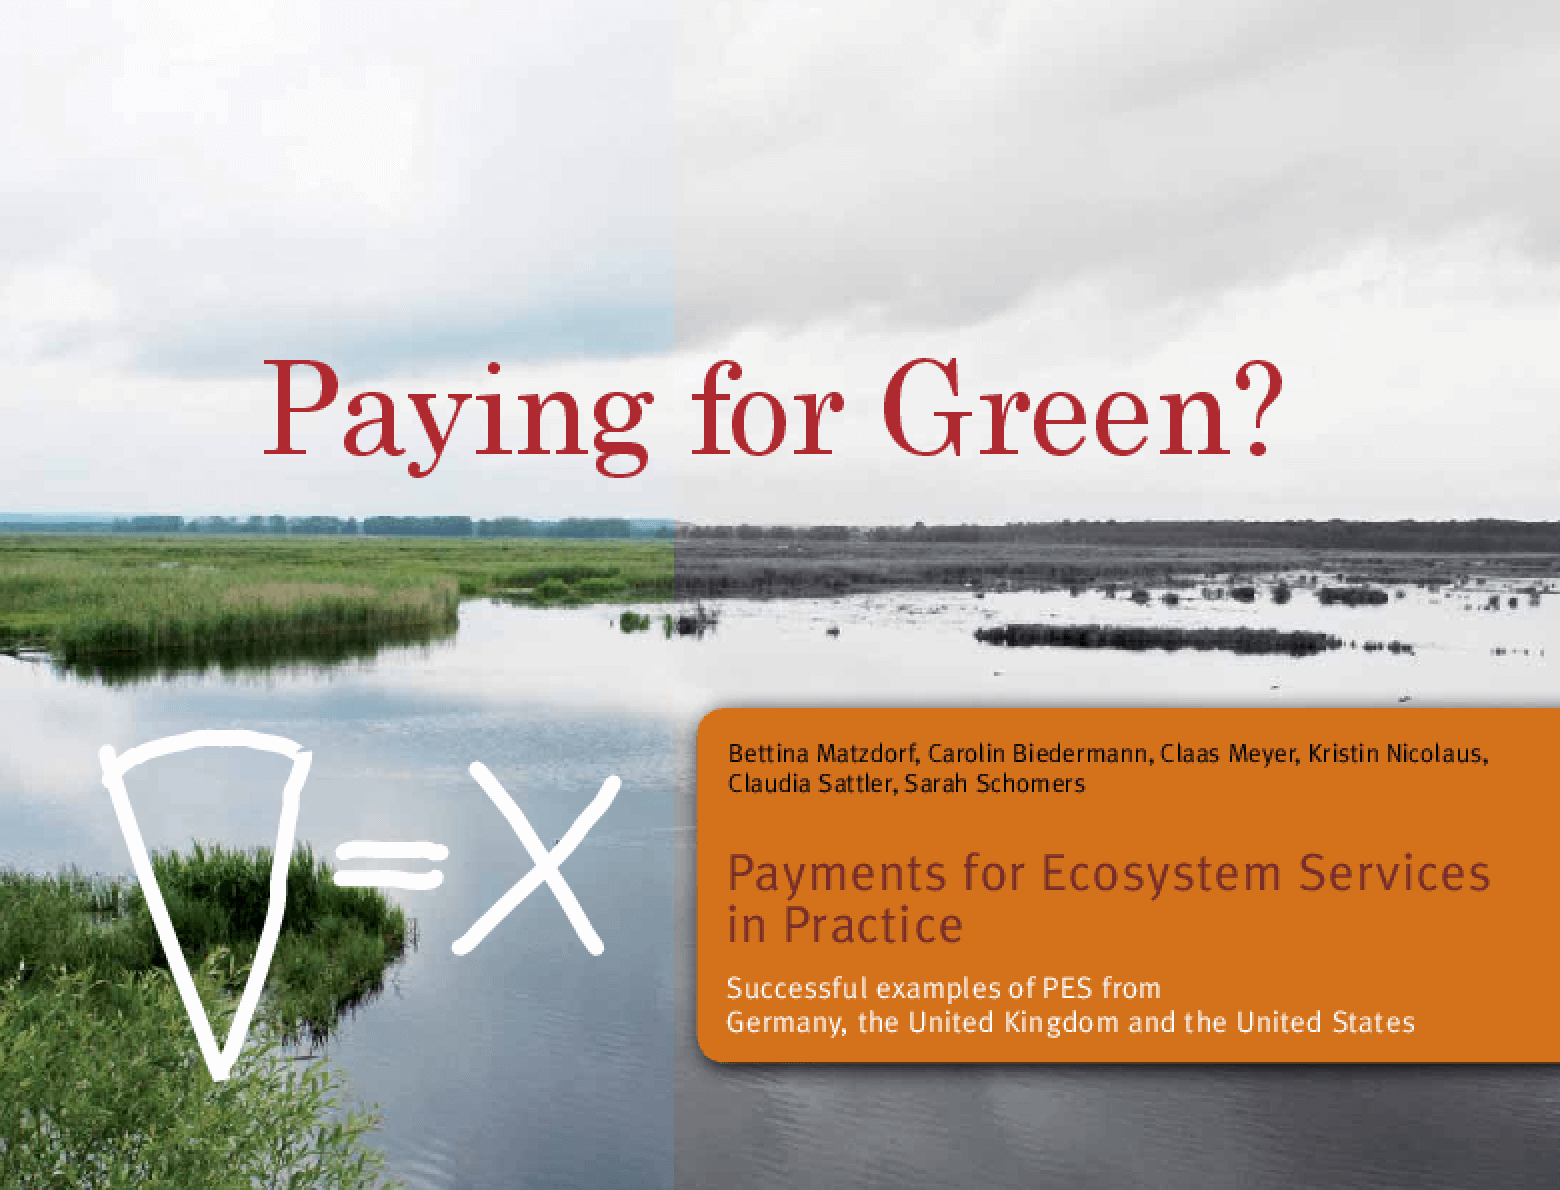 Paying for Green?: Payment for Ecosystem Services in Practice - Successful Examples of PES from Germany, the United Kingdom and the United States.